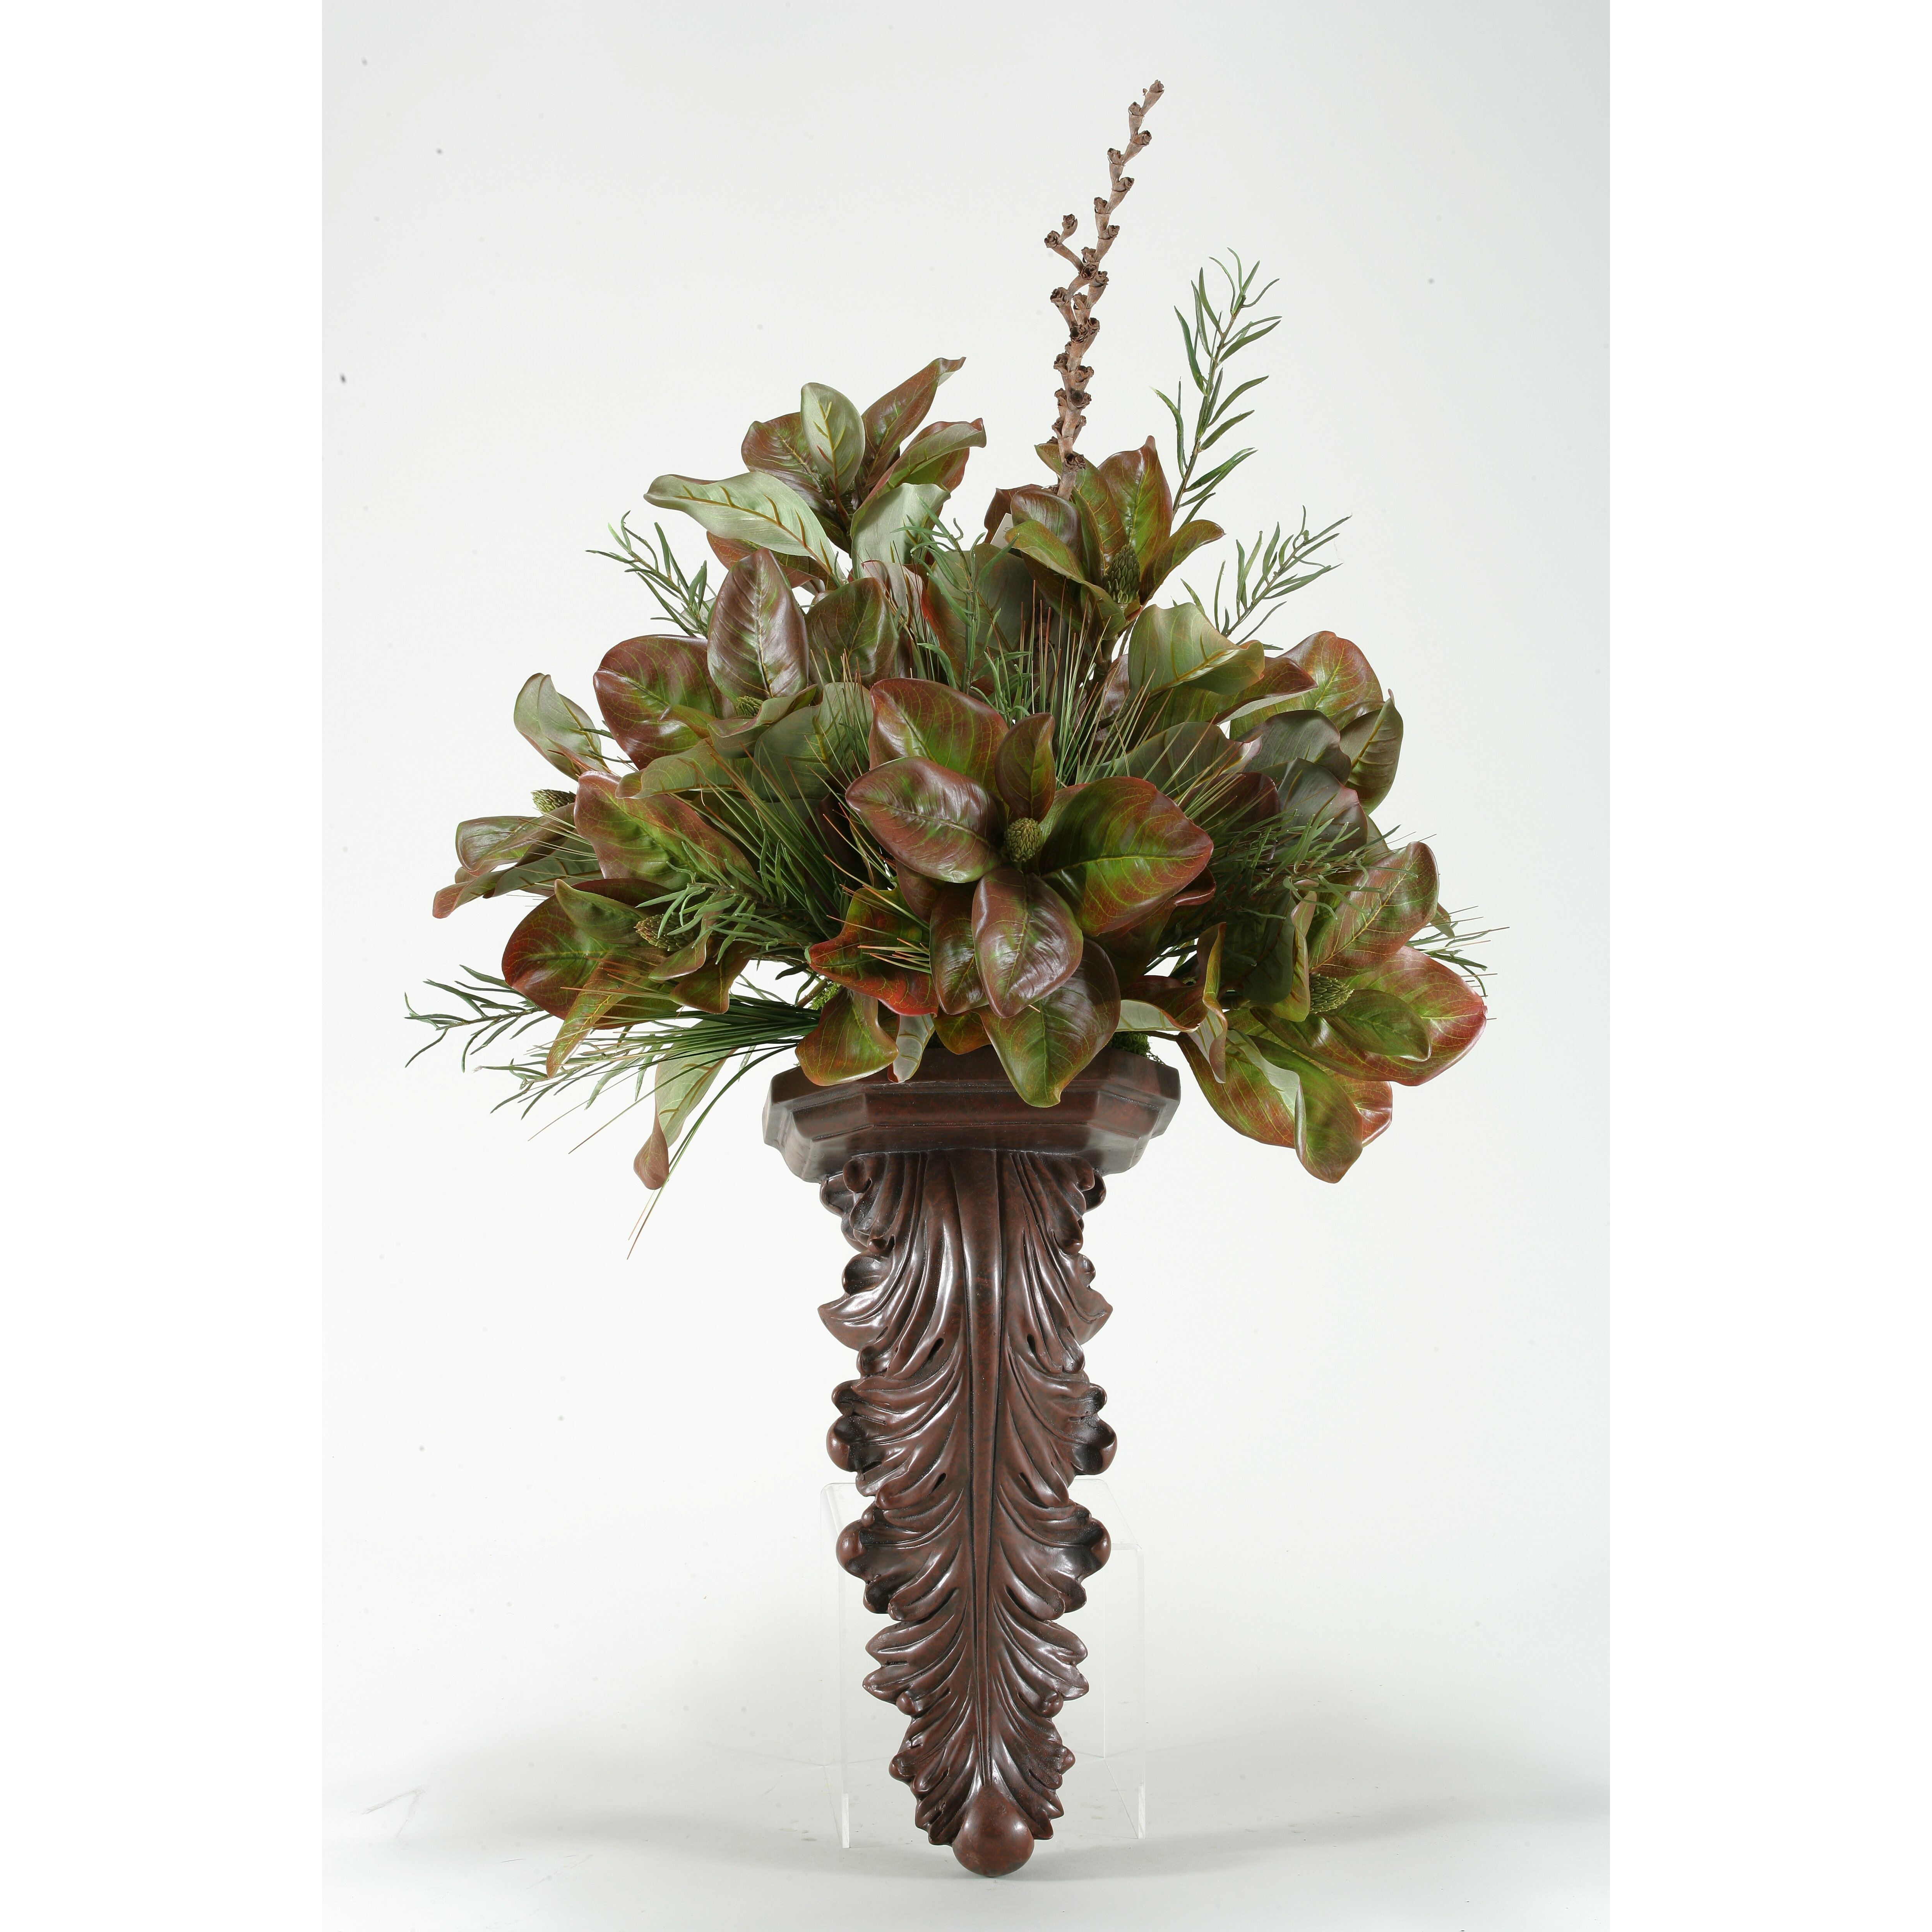 D & W Silks Magnolia Foliage with Willow and Onion Grass Wall Plant in Sconce Wayfair